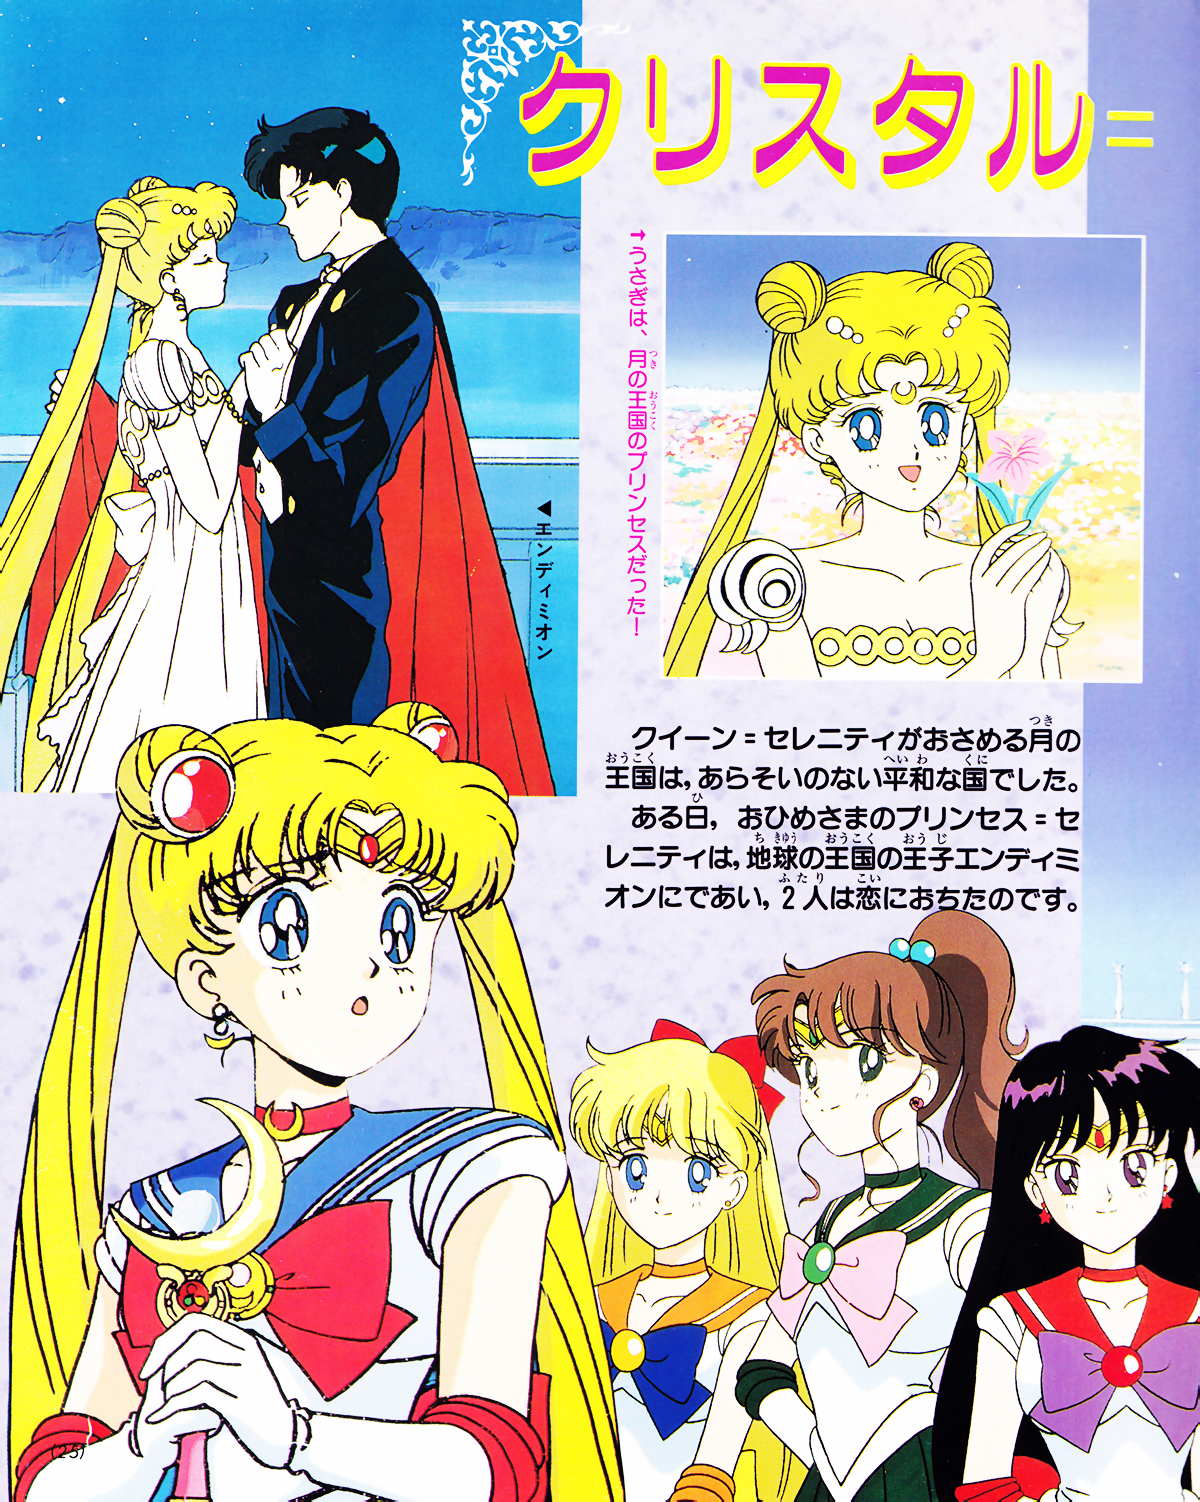 Full on sailor moon vol 3